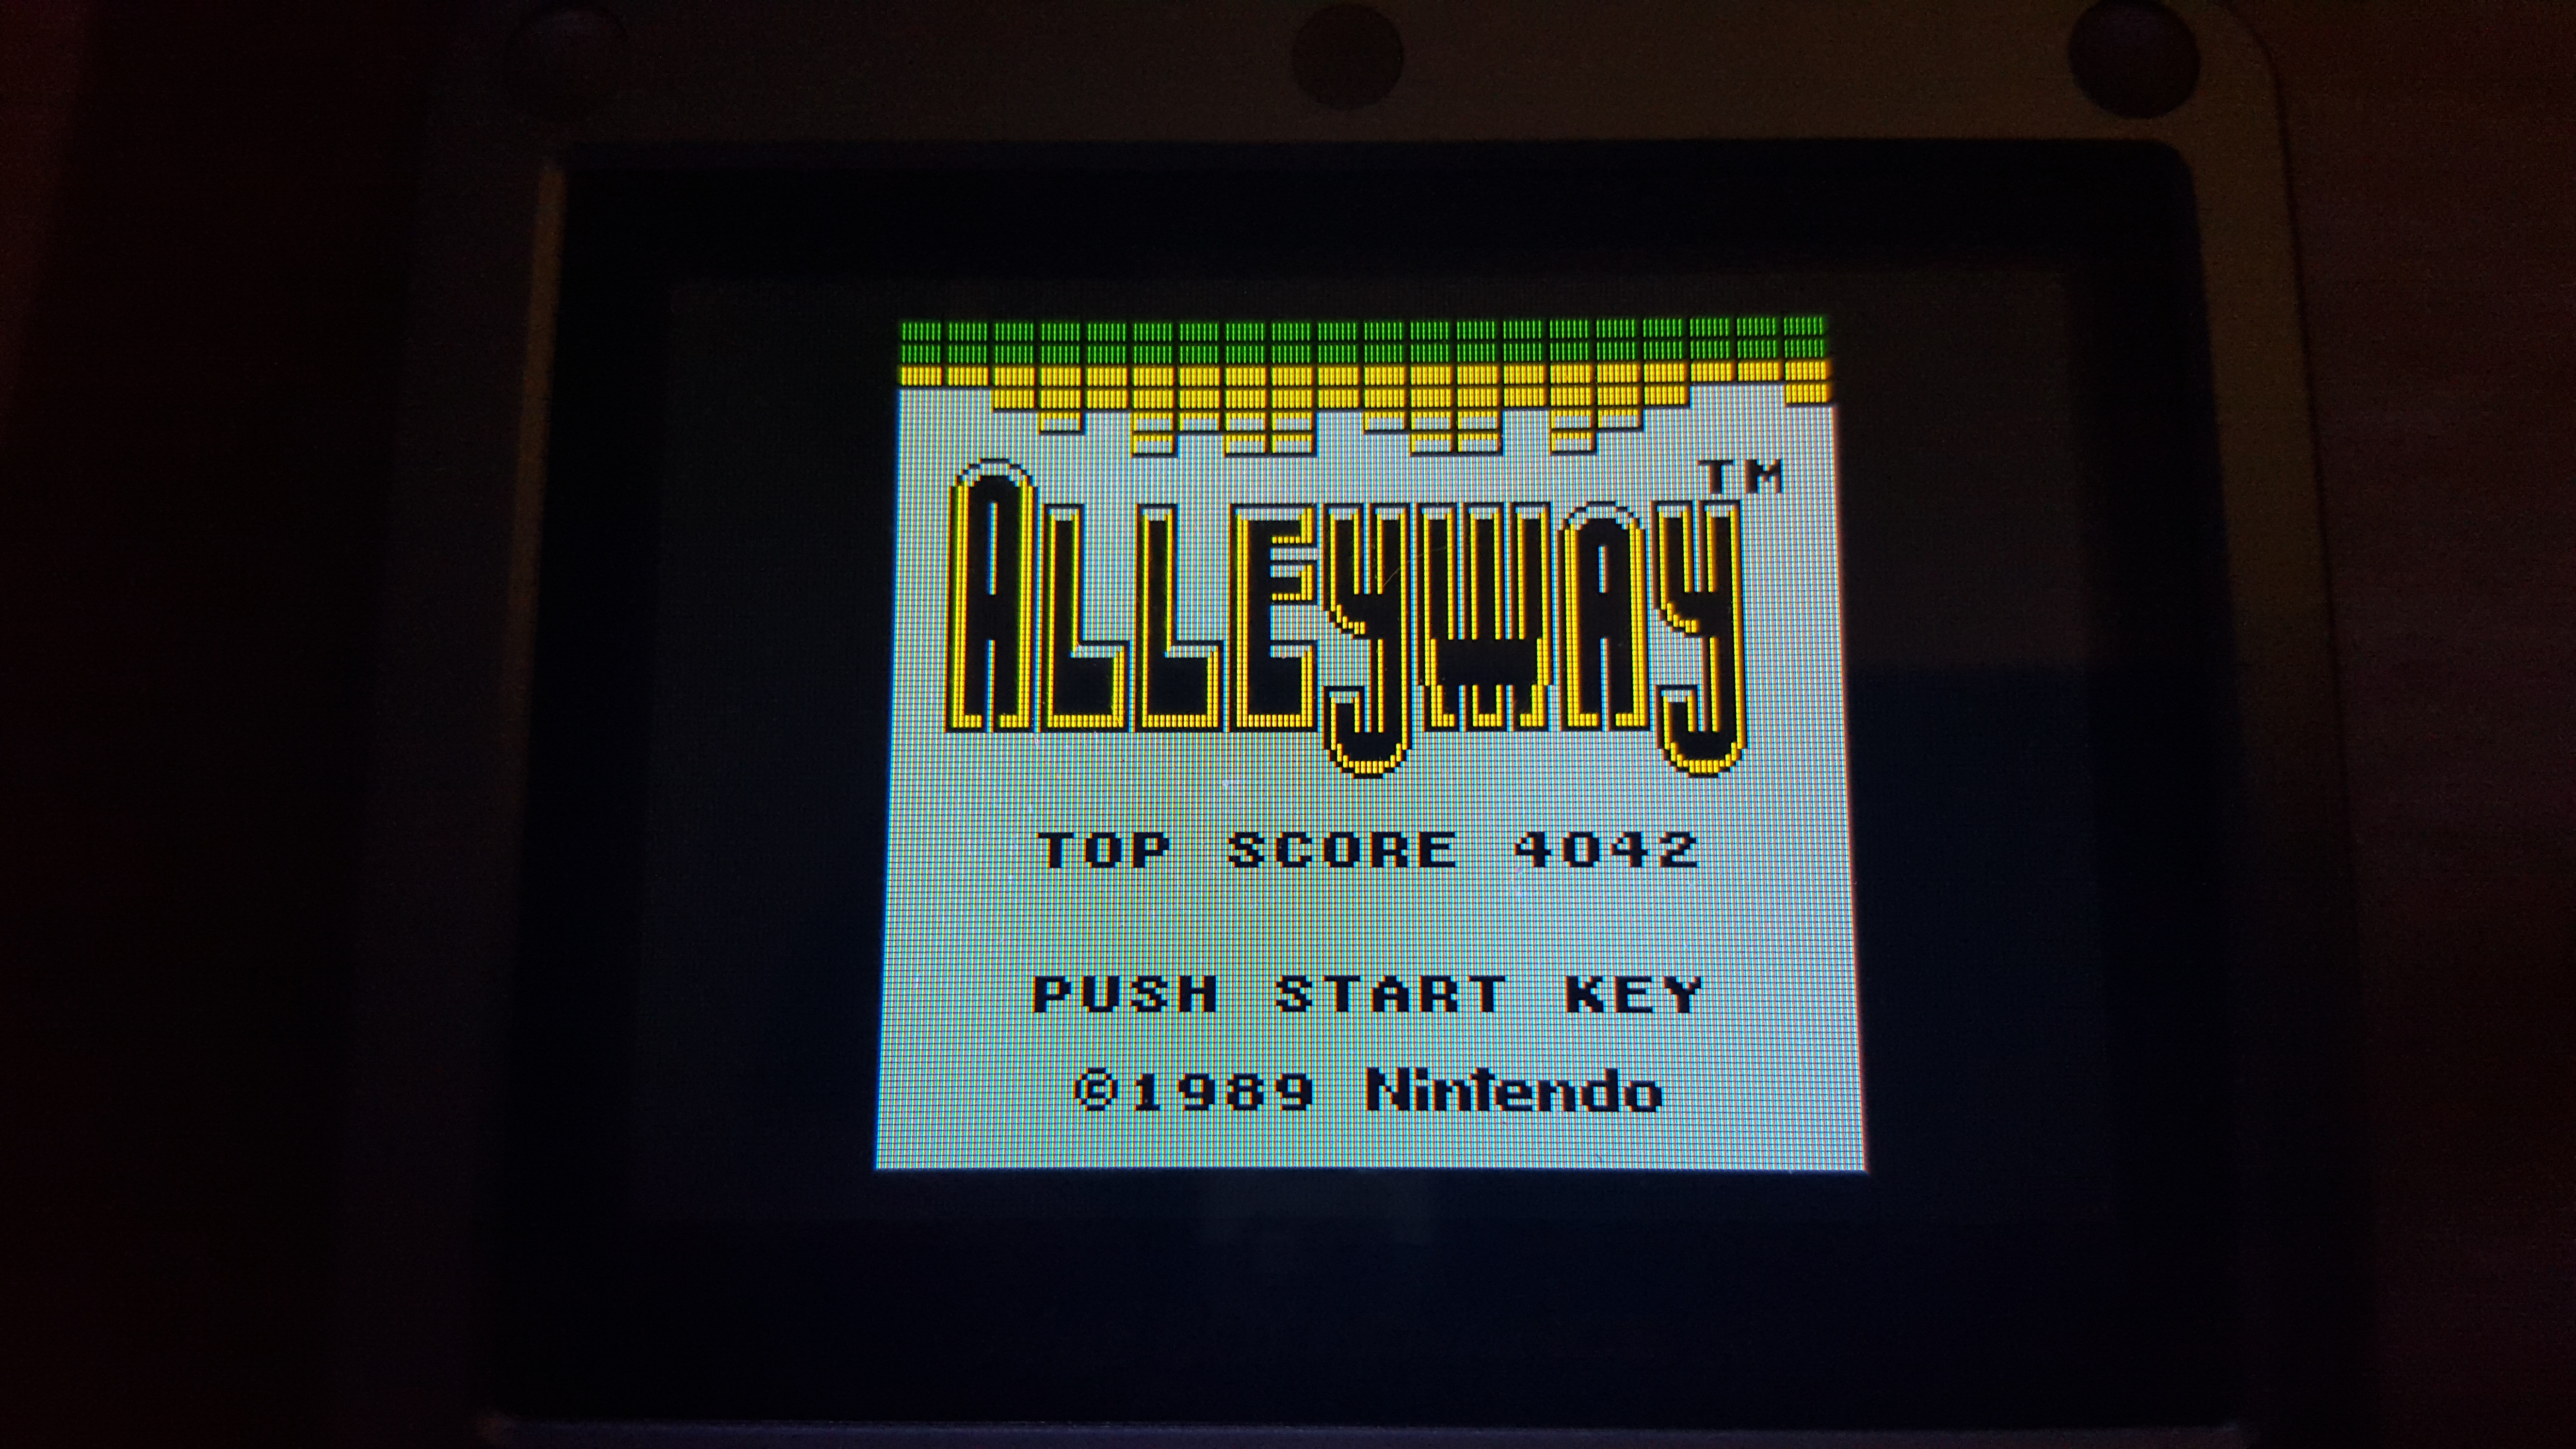 Alleyway 4,042 points